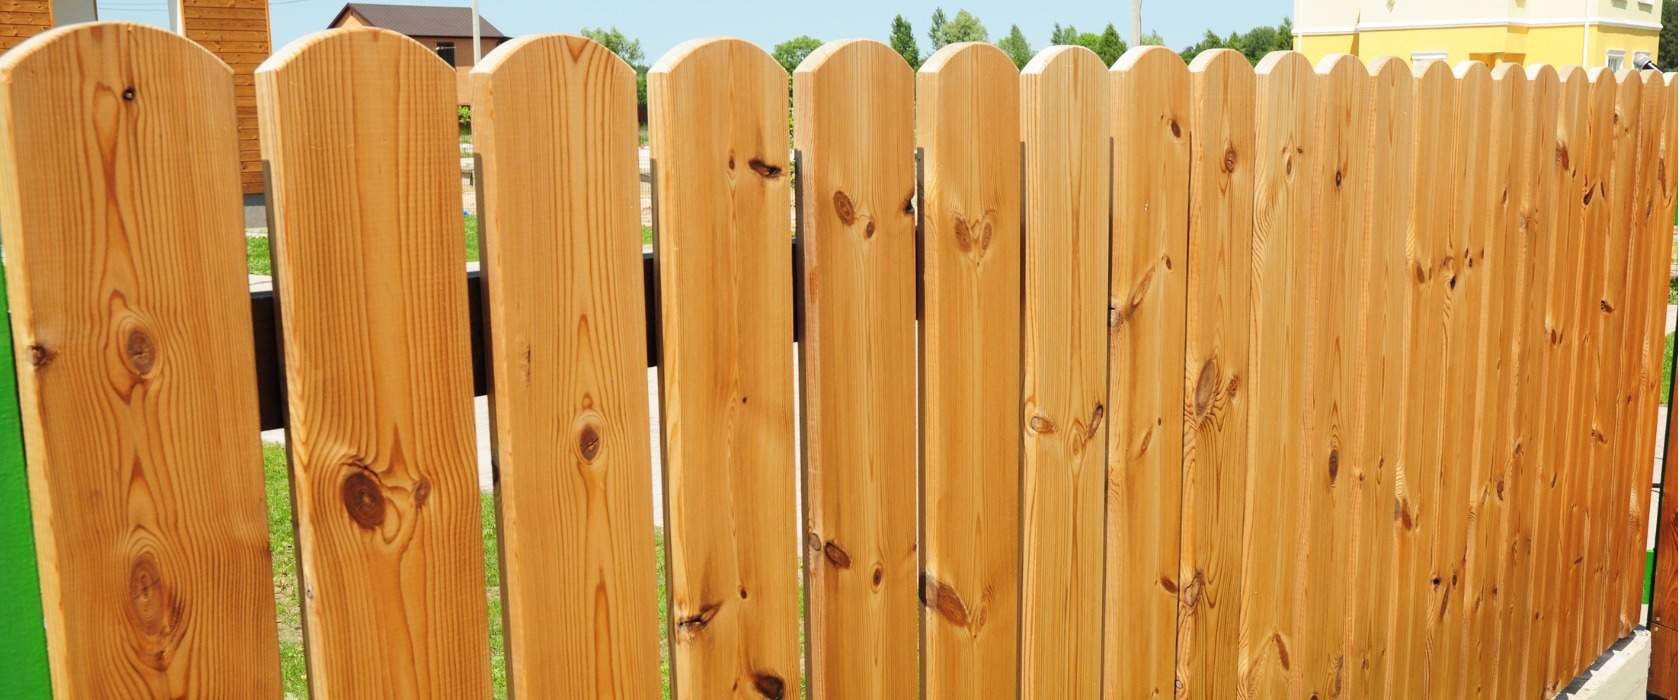 fencing - mj landscapes and construction - austin texas